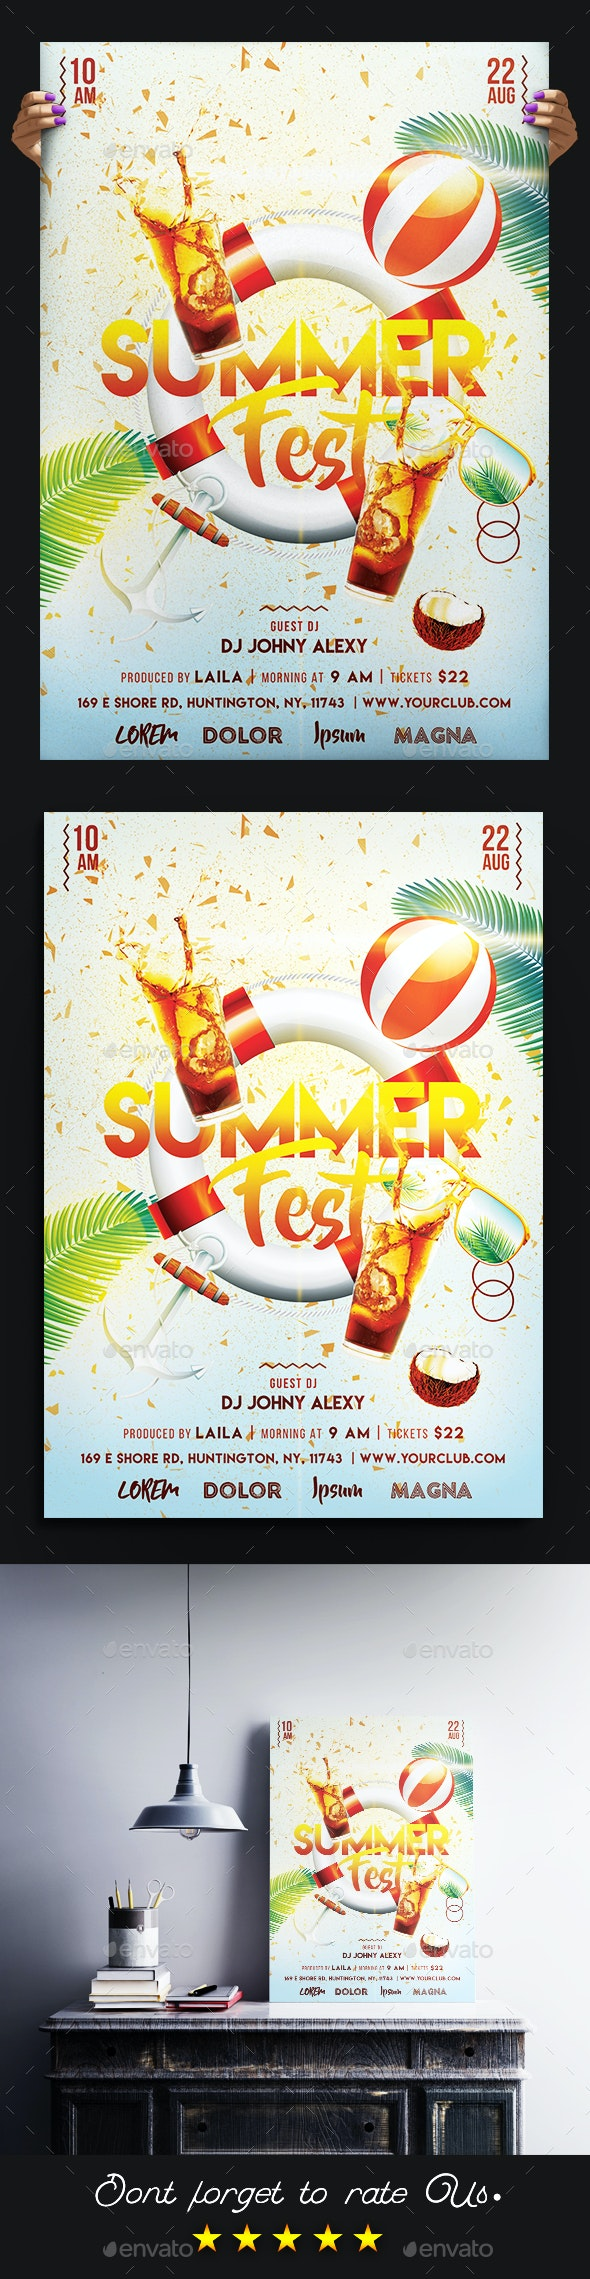 Summer Fest Party Flyer - Clubs & Parties Events